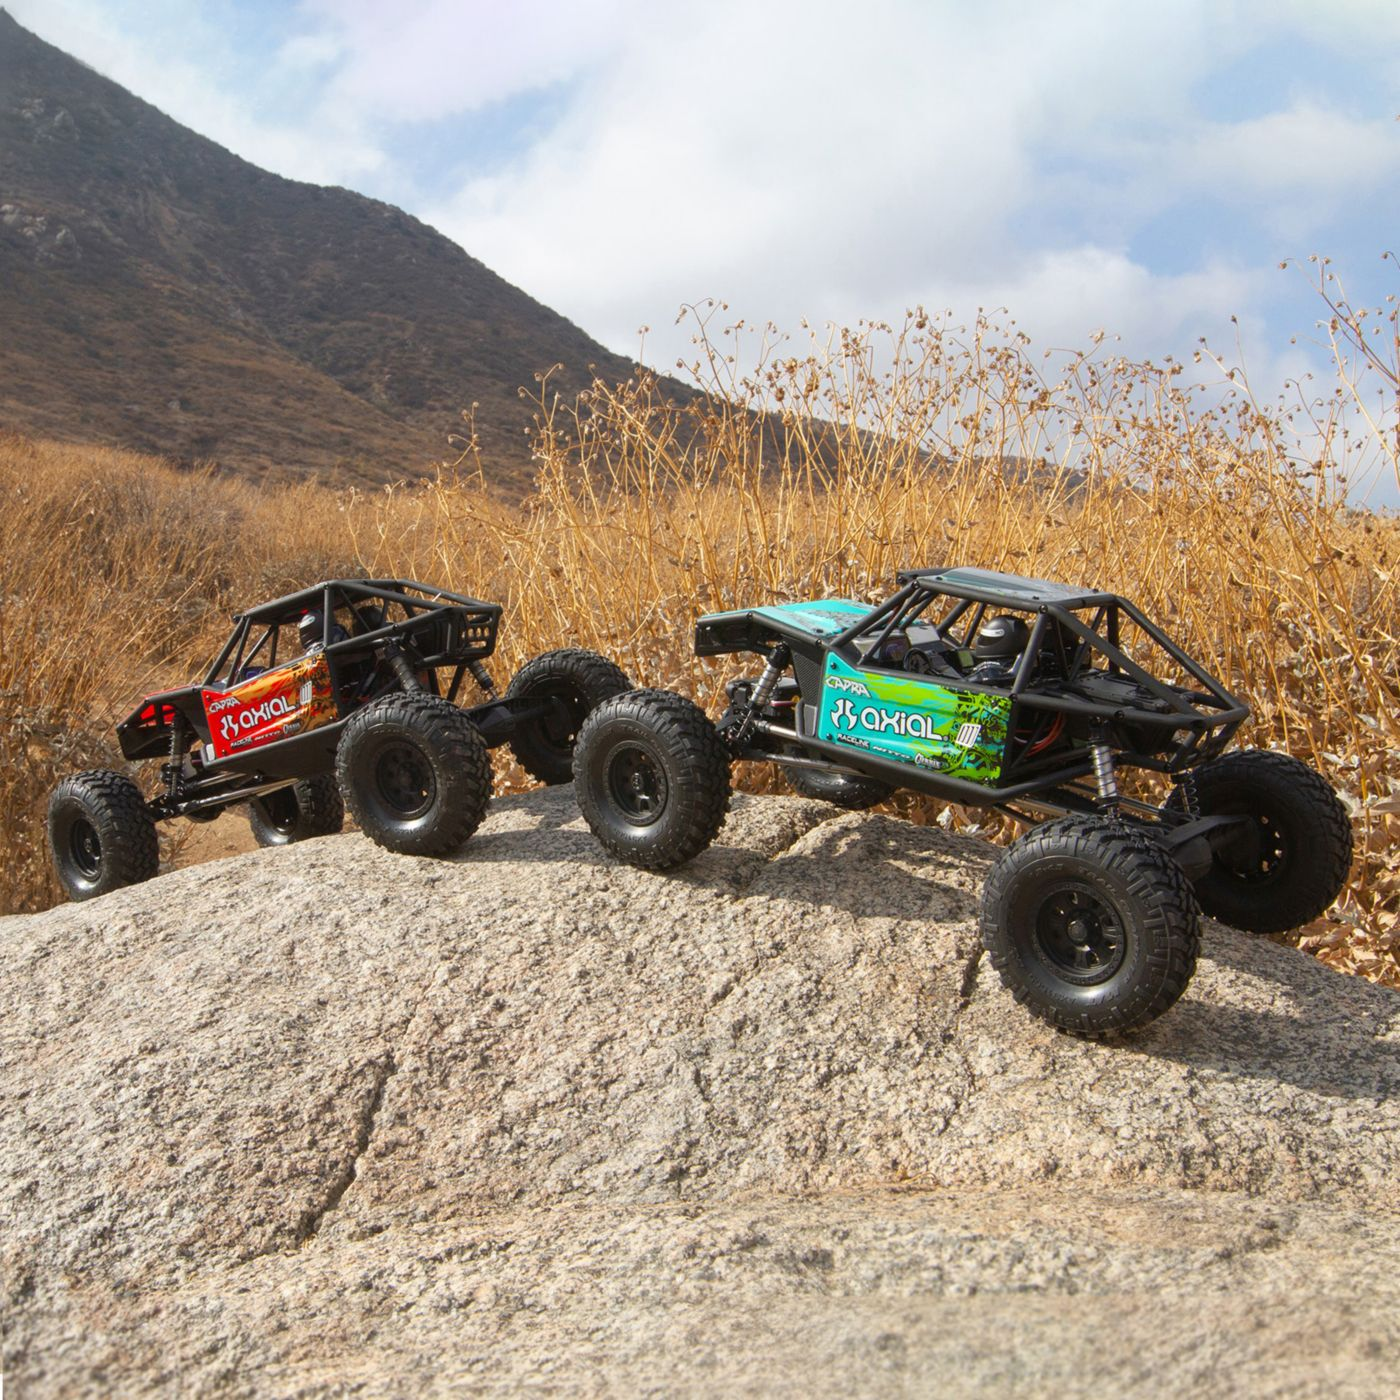 Capra 1.9 Unlimited Trail Buggy | Axial